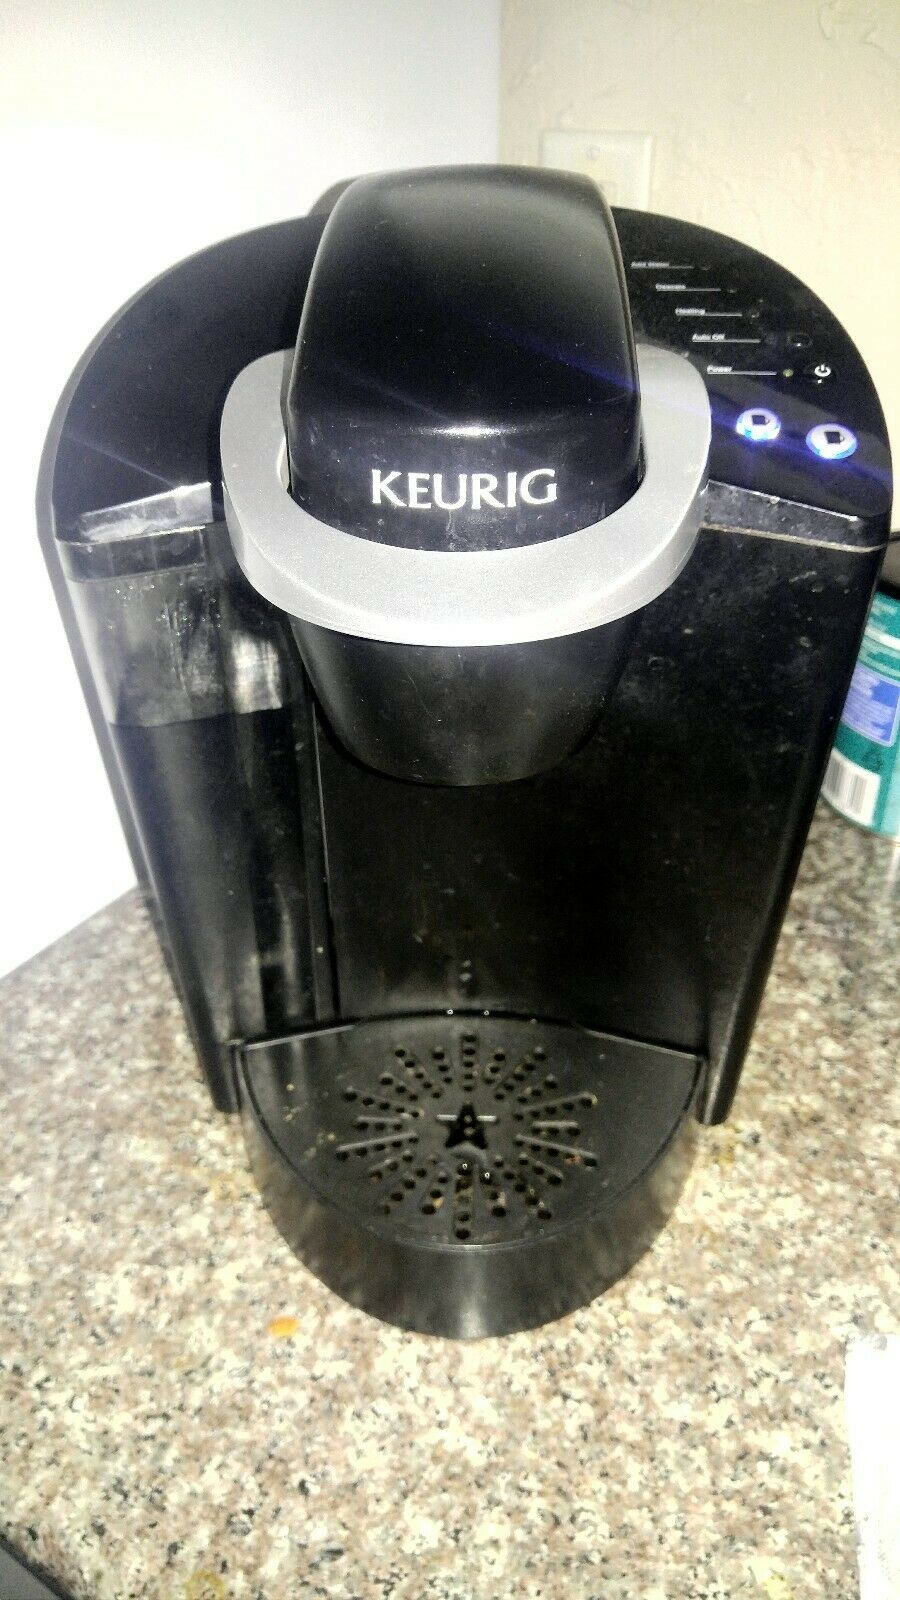 Pin On Keurig Coffee Maker